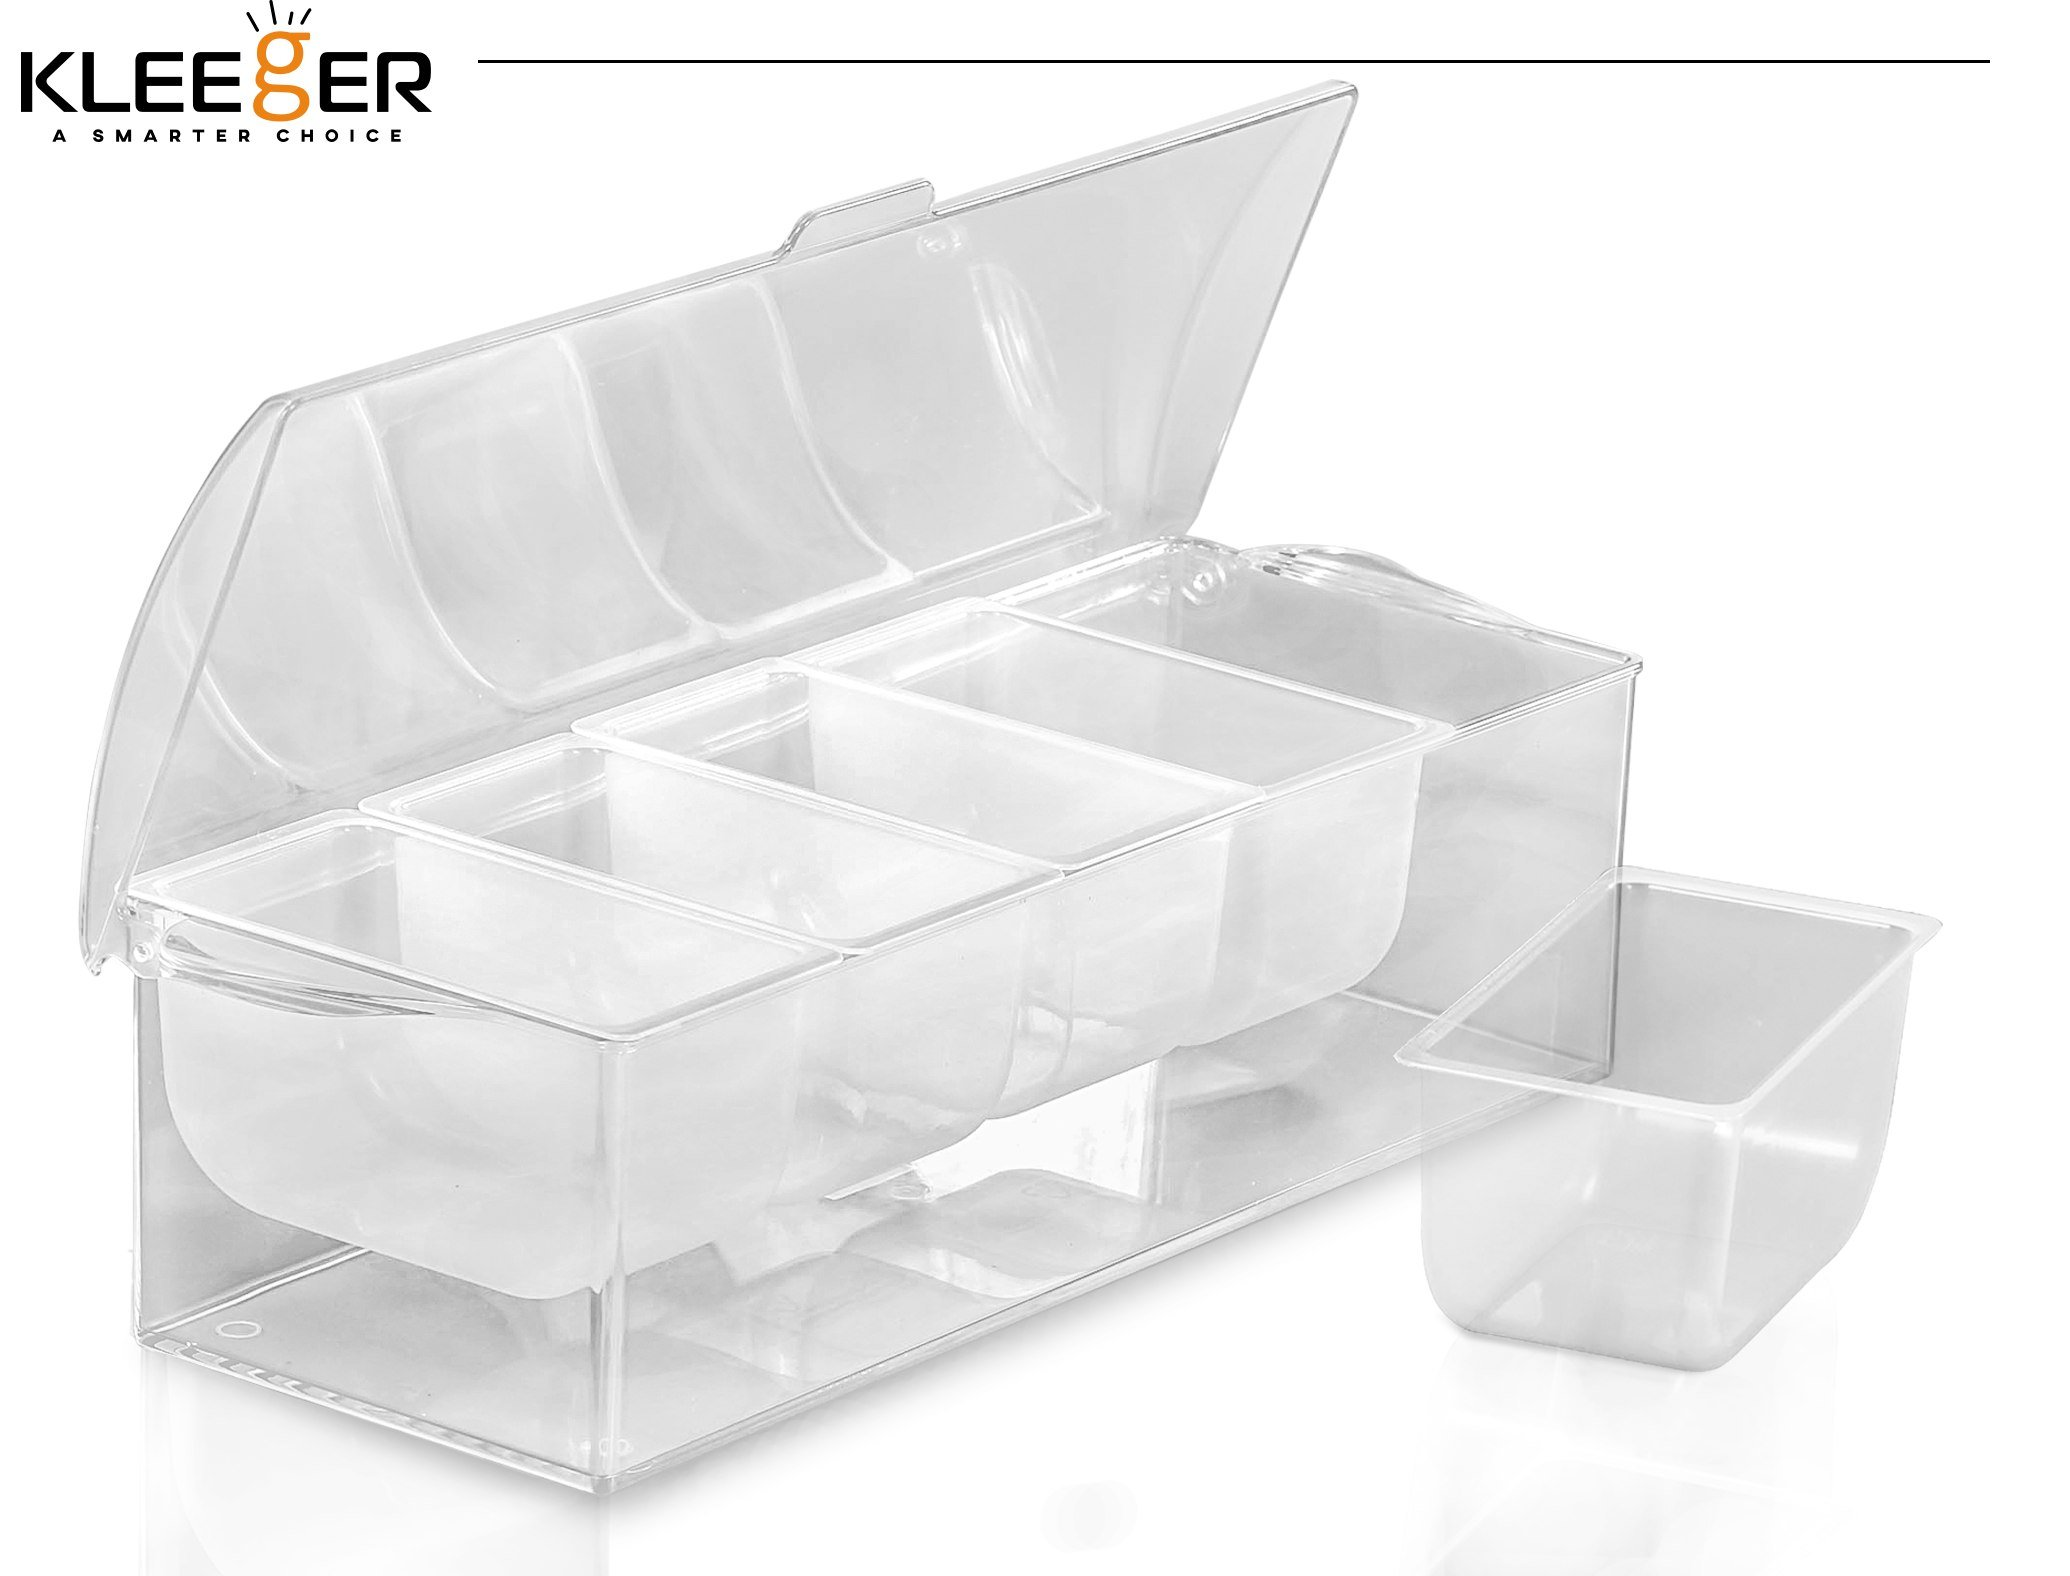 Kleeger Chilled Condiment Server With Lid: 5 Removable Compartments, Bottom Fills With Ice by KLEEGER (Image #3)